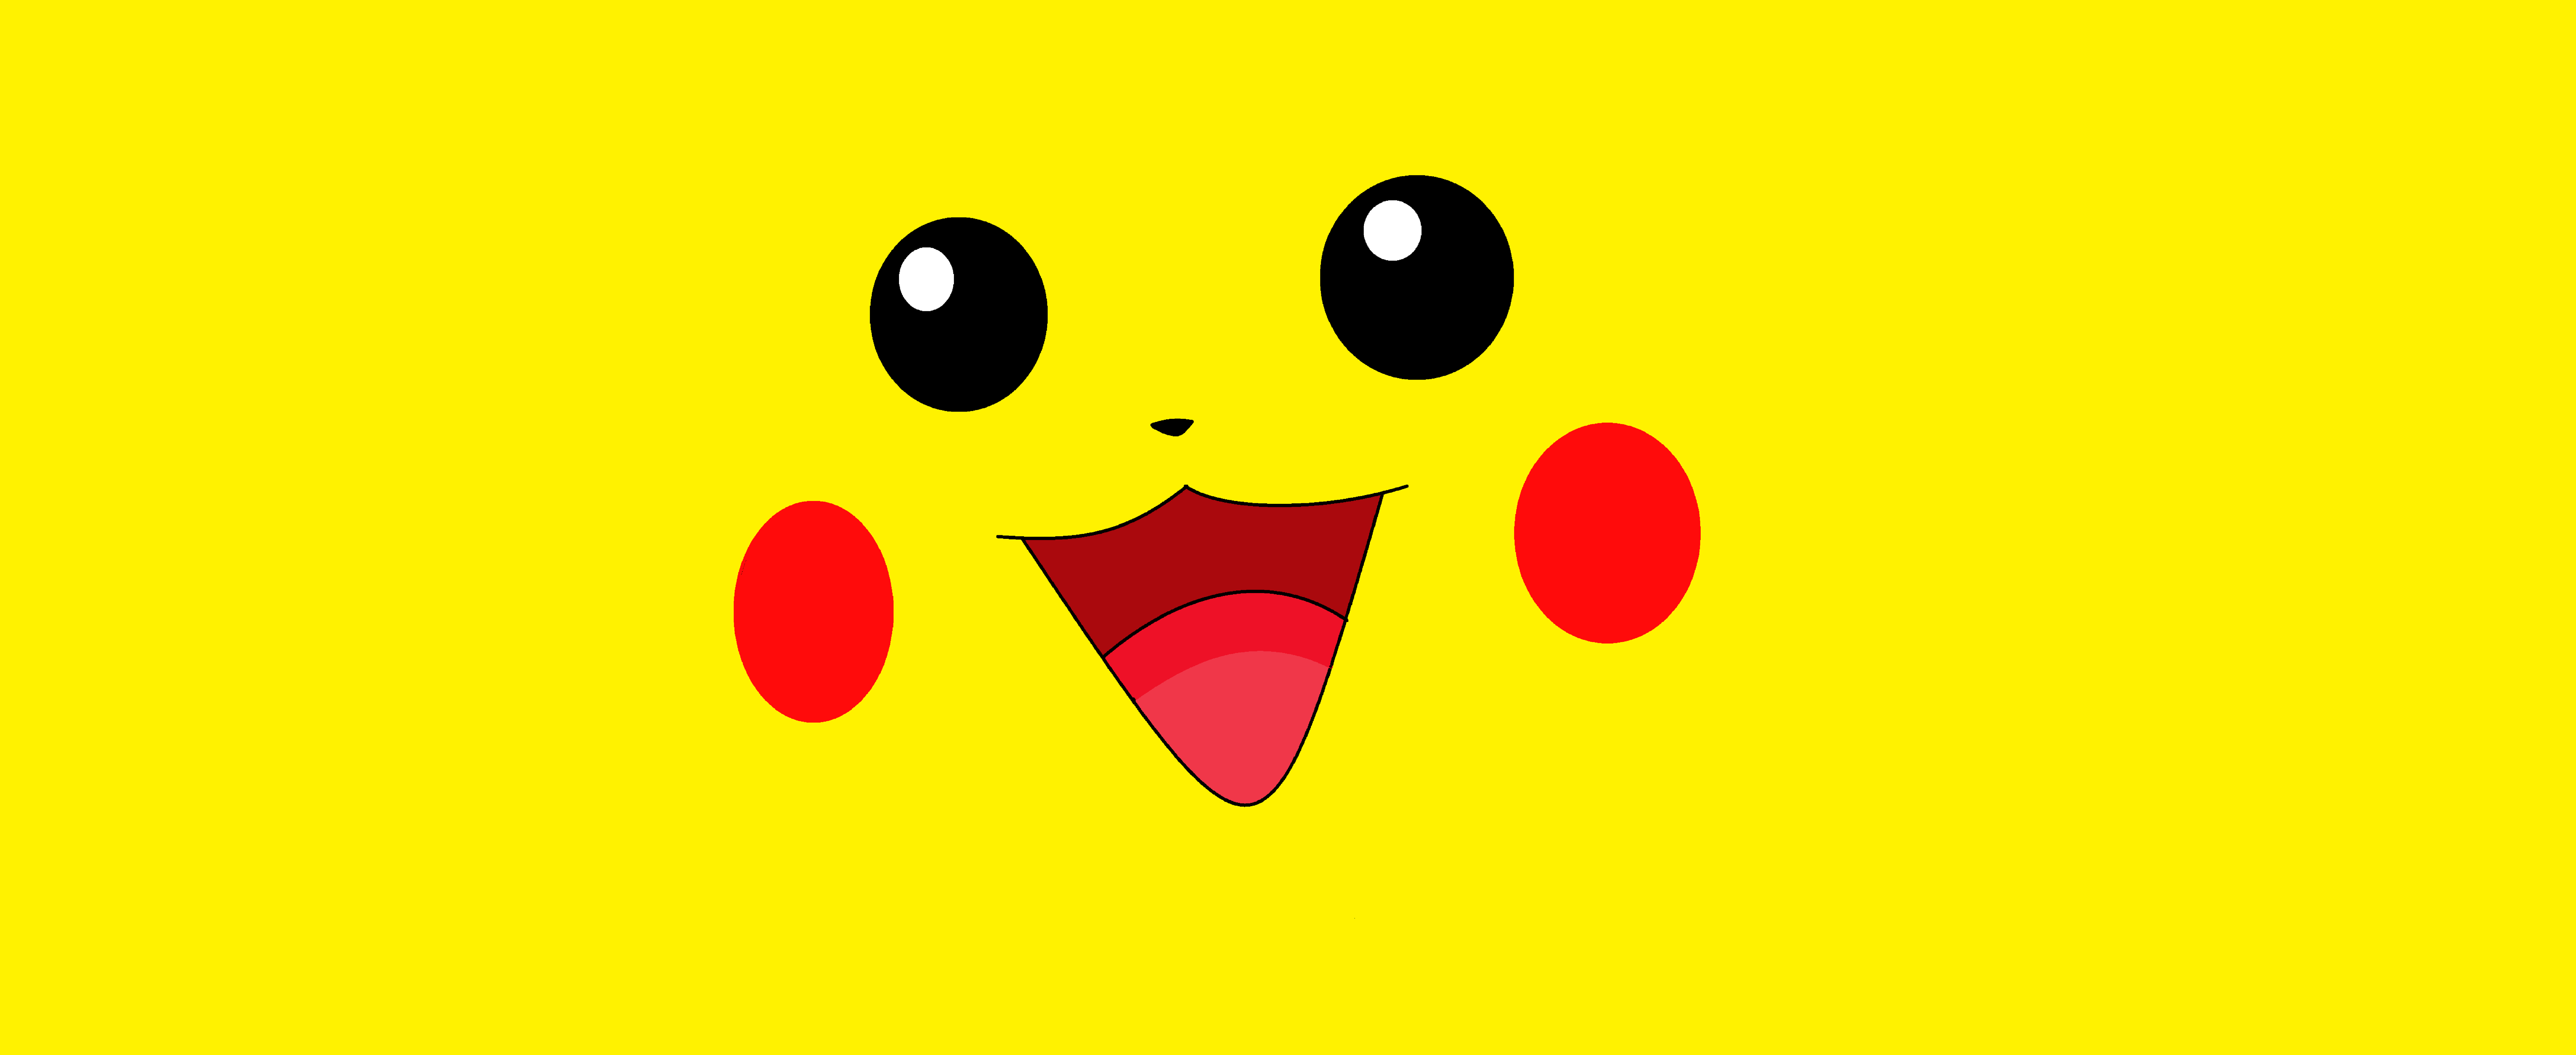 Pikachu Wallpaper By ECHO233322